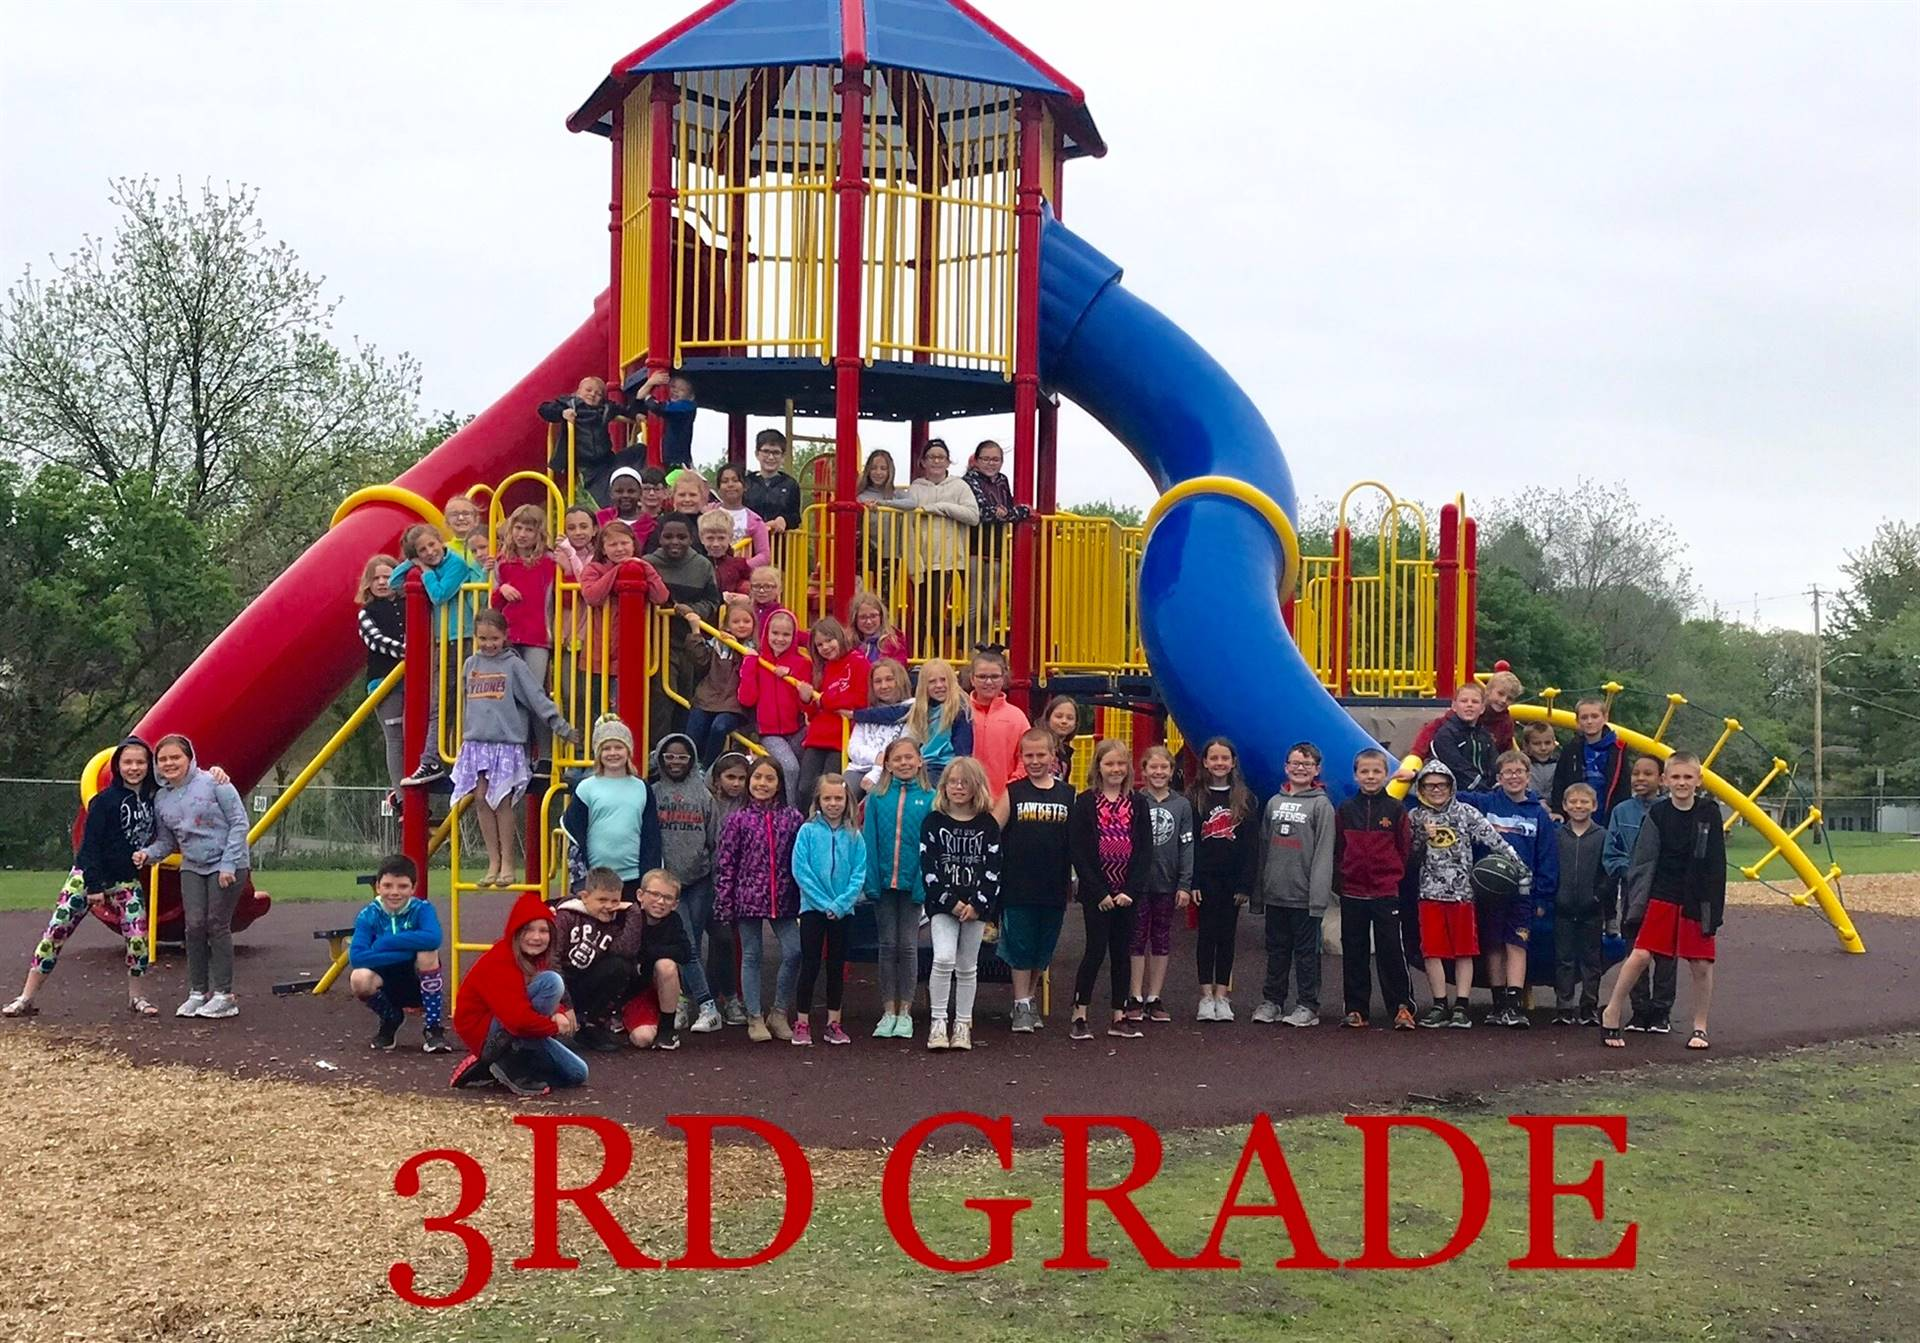 3rd grade children lined up on playground outside for class picture